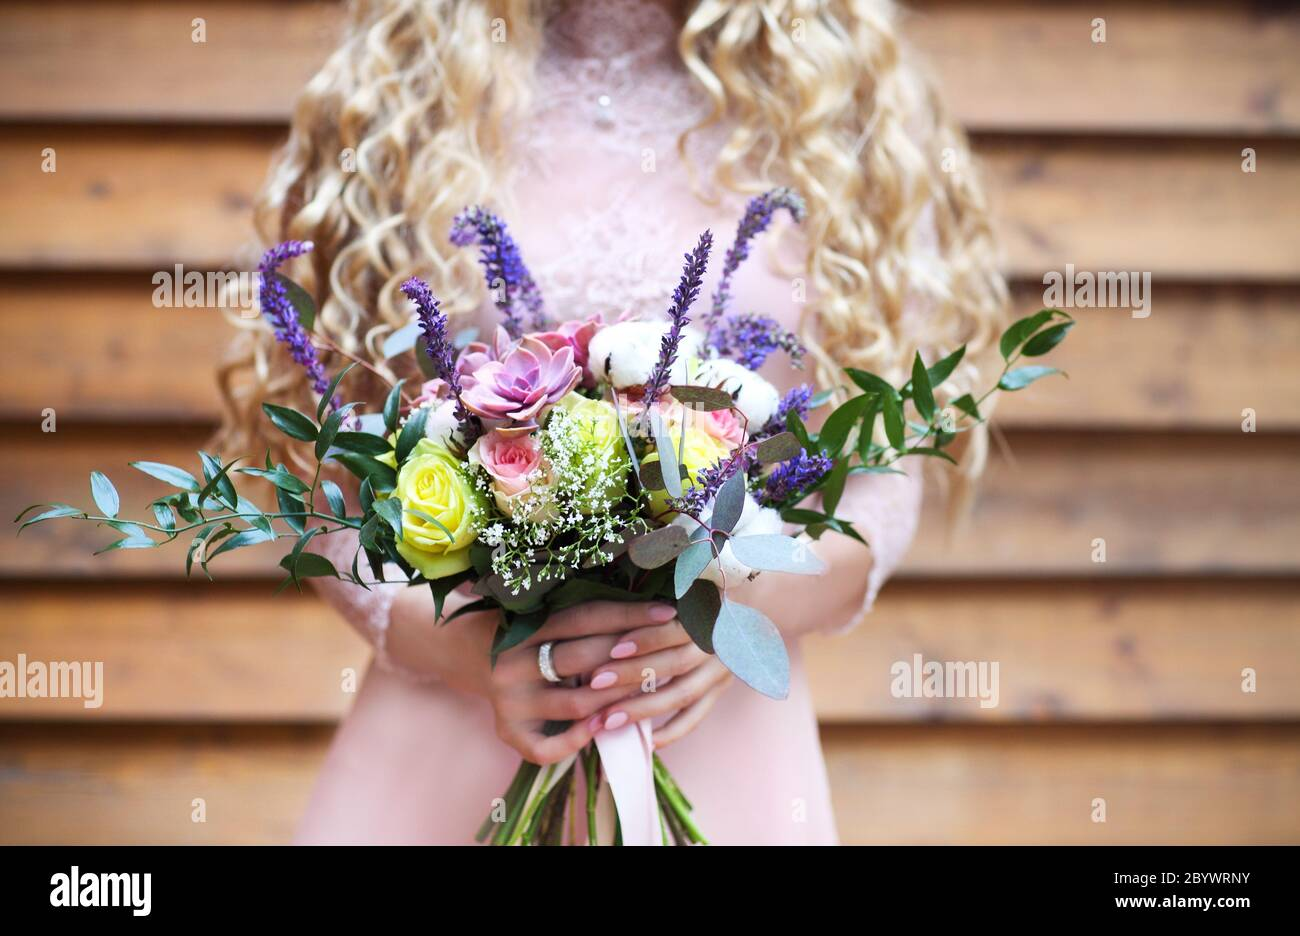 Succulent Wedding Flowers High Resolution Stock Photography And Images Alamy